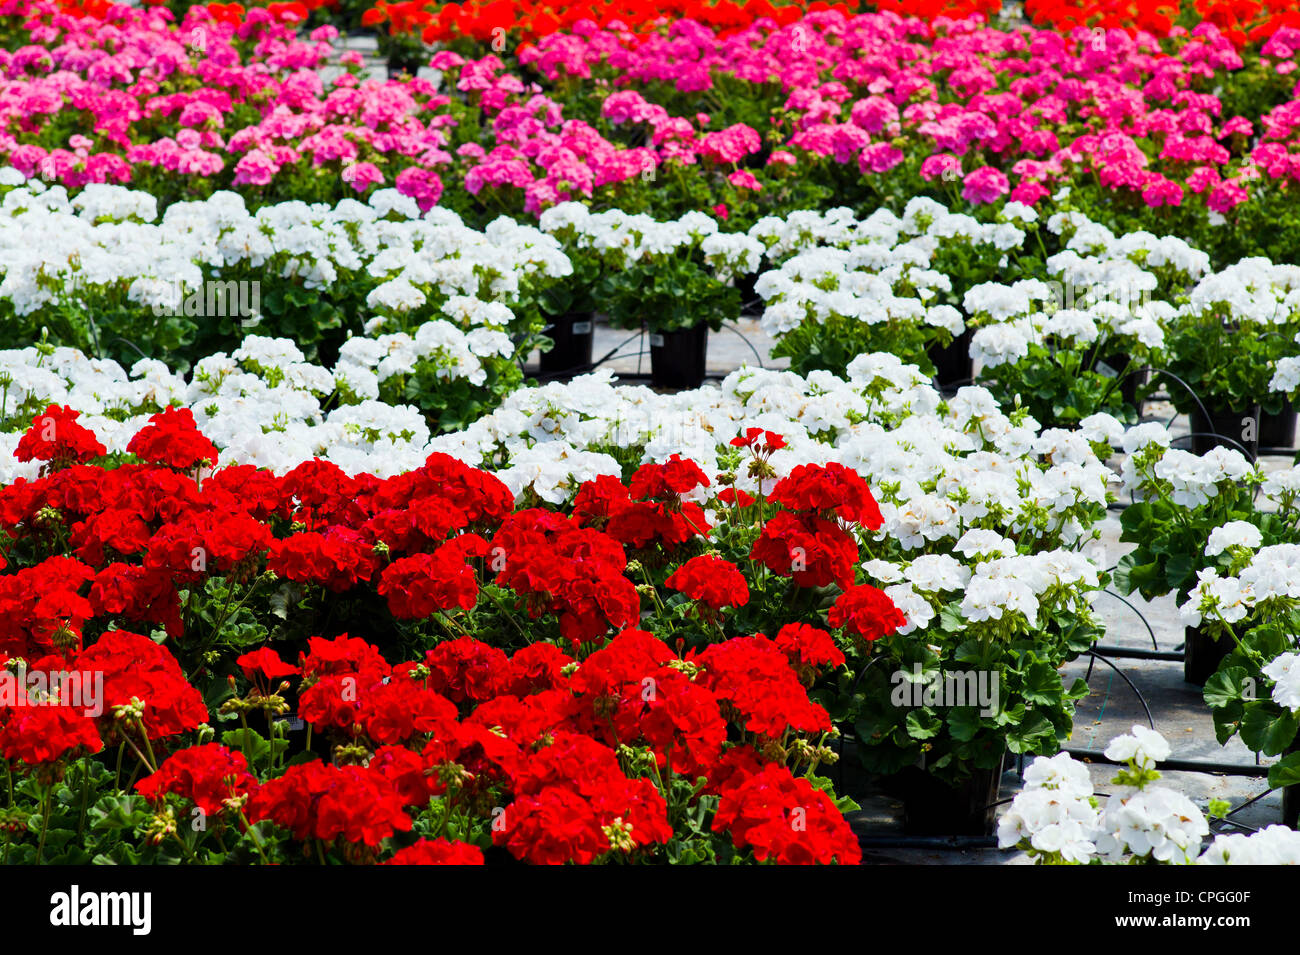 Fresh spring Geranium flowers for sale at a small town nursery. - Stock Image